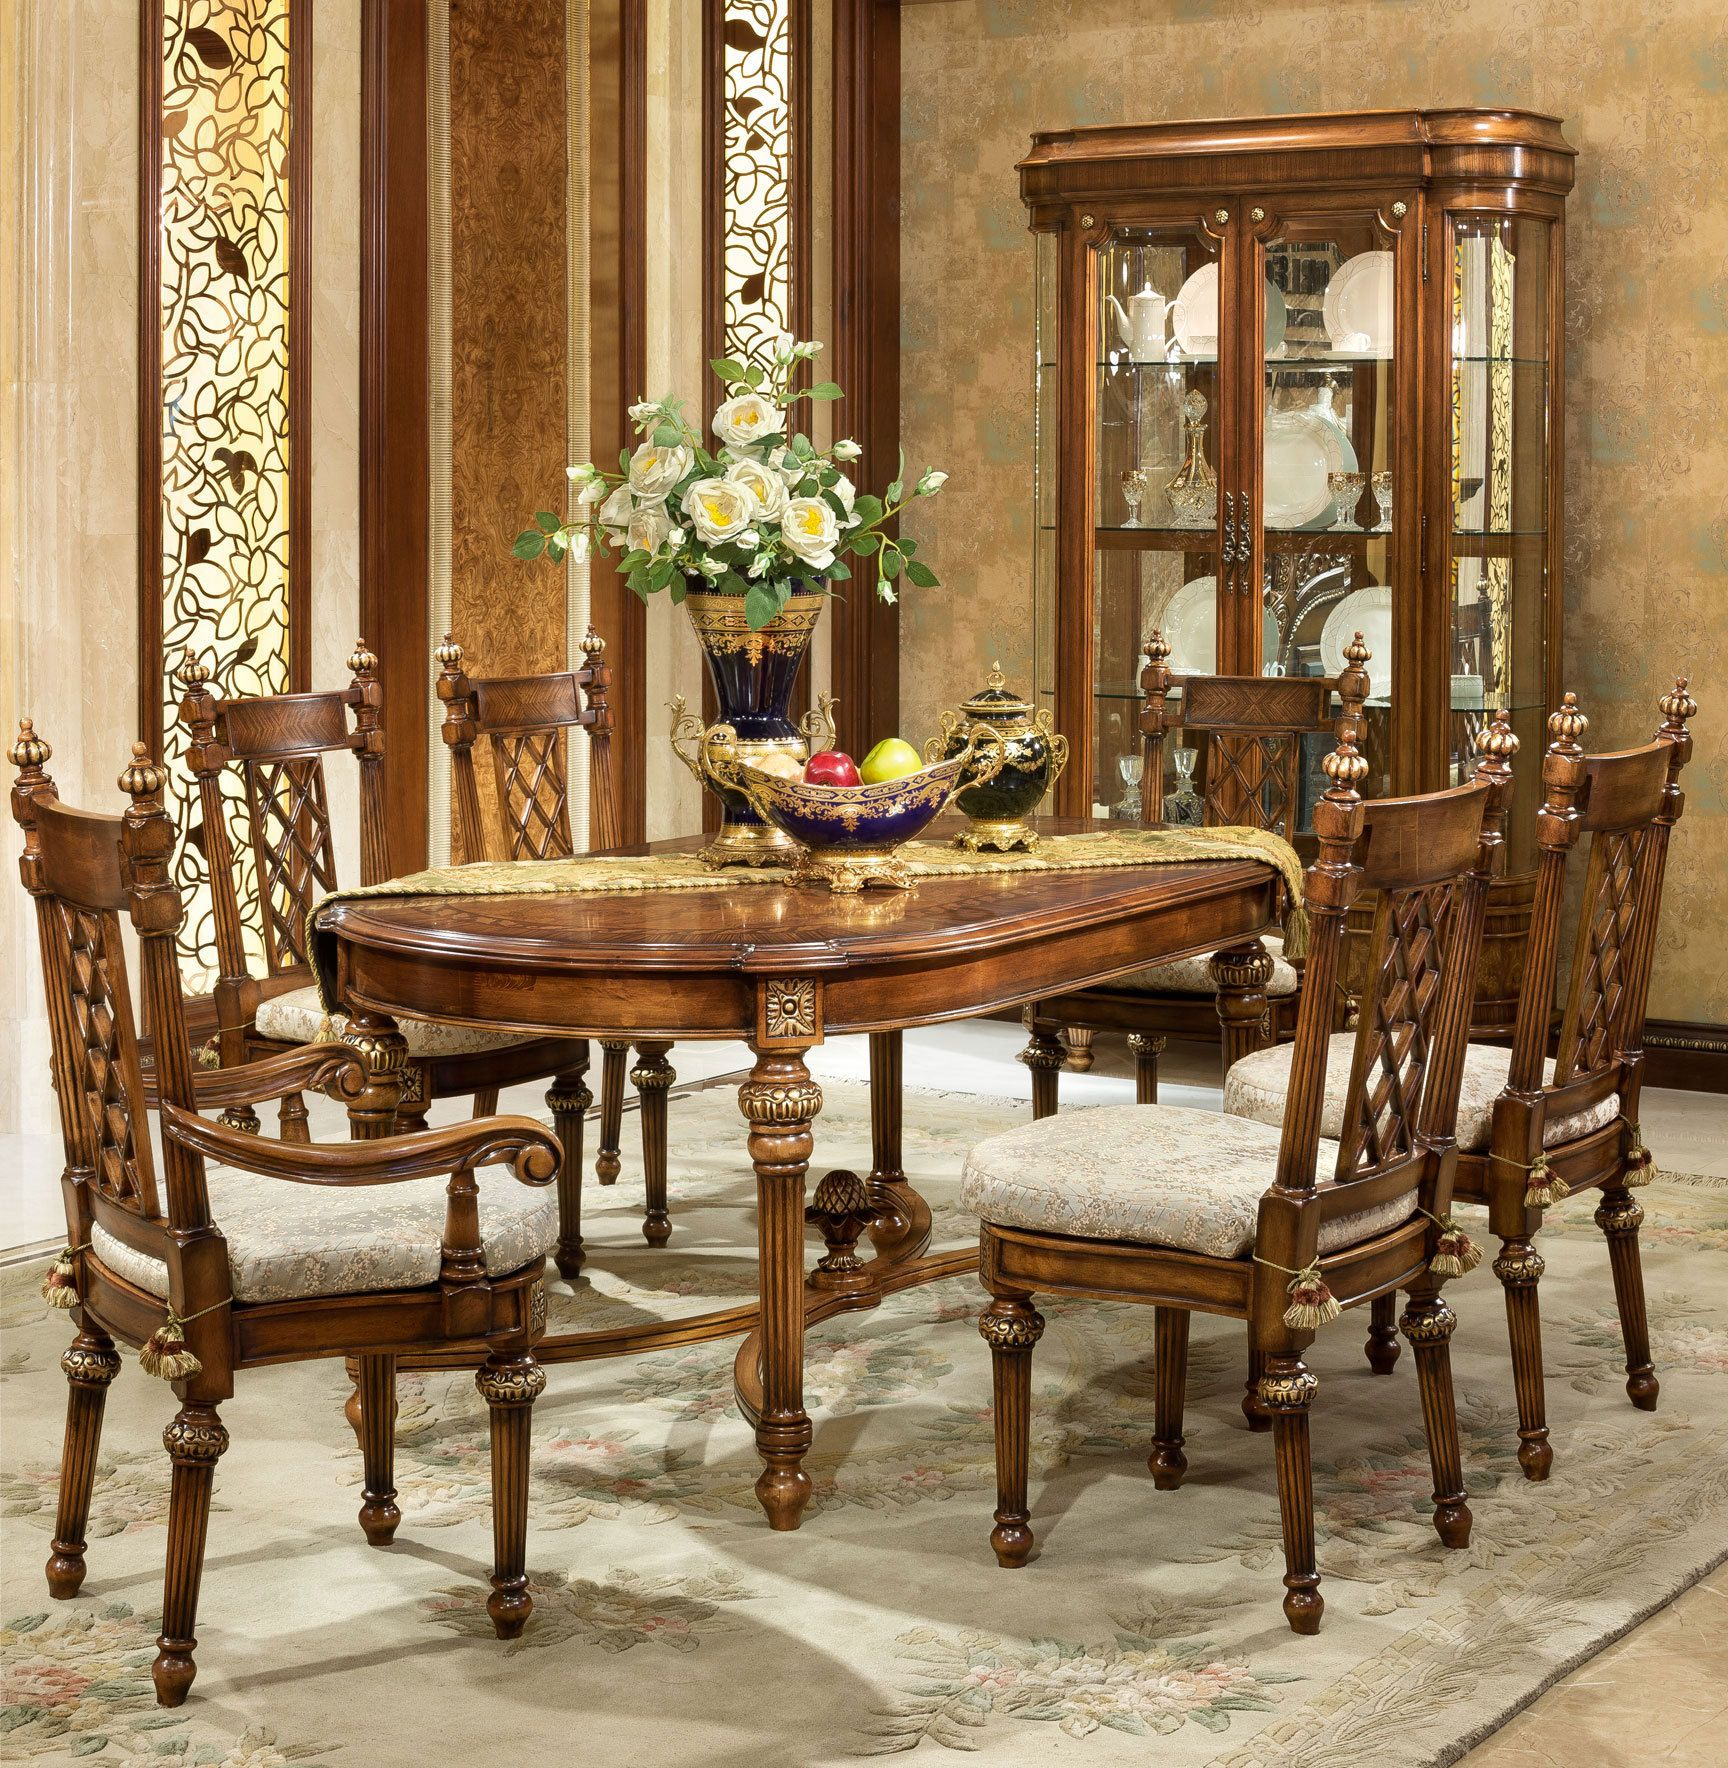 Room Store Dining Room Sets: Ascot Oval Dining Room Set